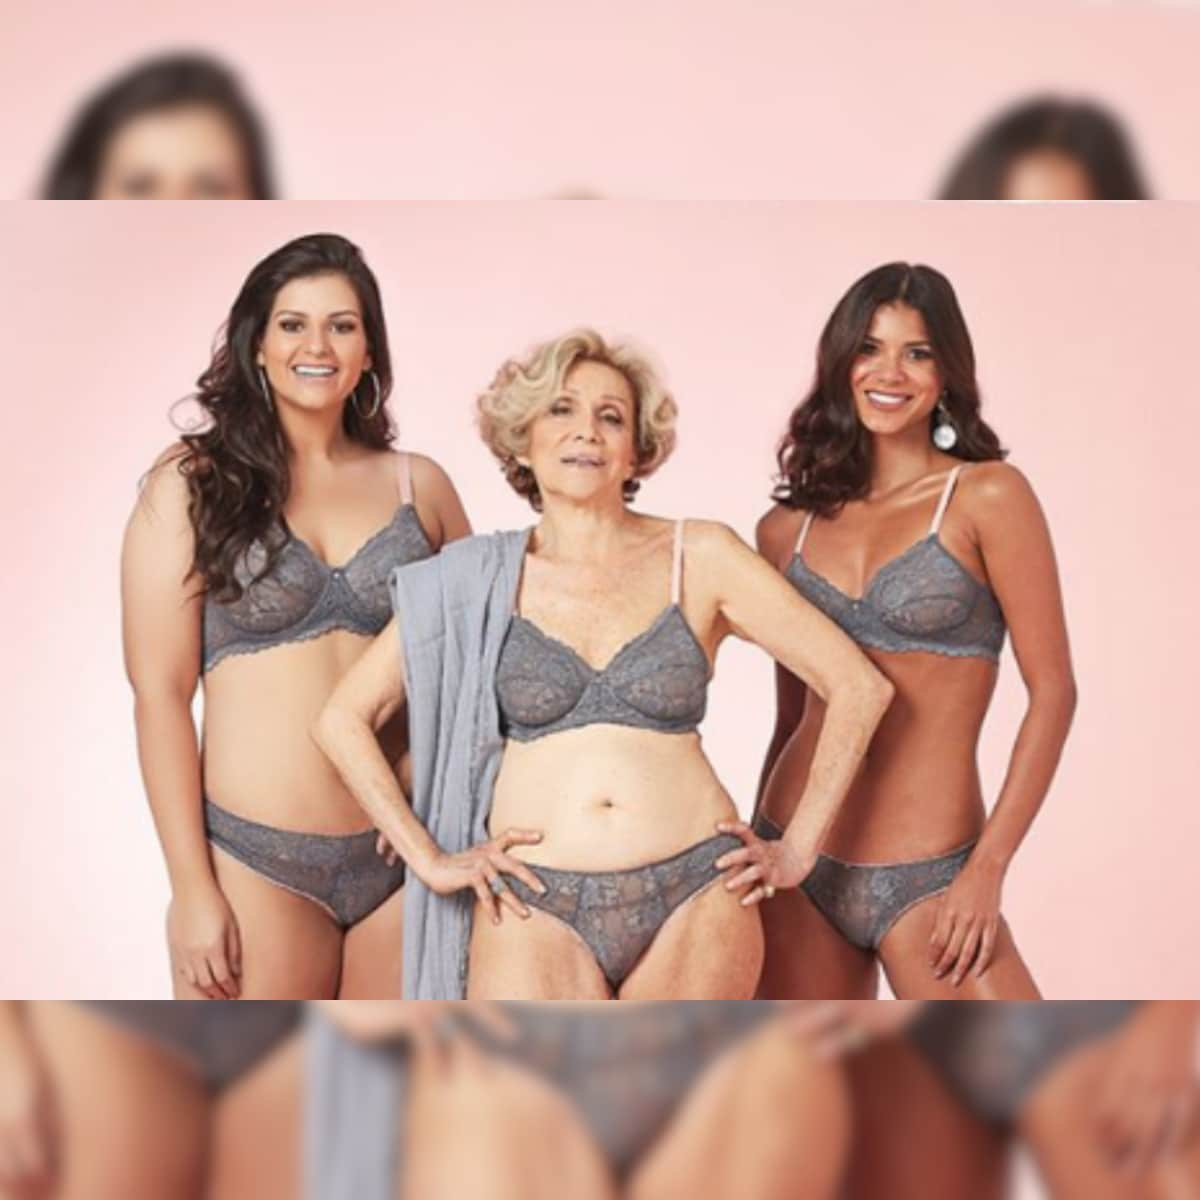 Granny big ass photos Brazil S 79 Year Old Granny Turns Lingerie Model Wants To Make Elderly Women Visible